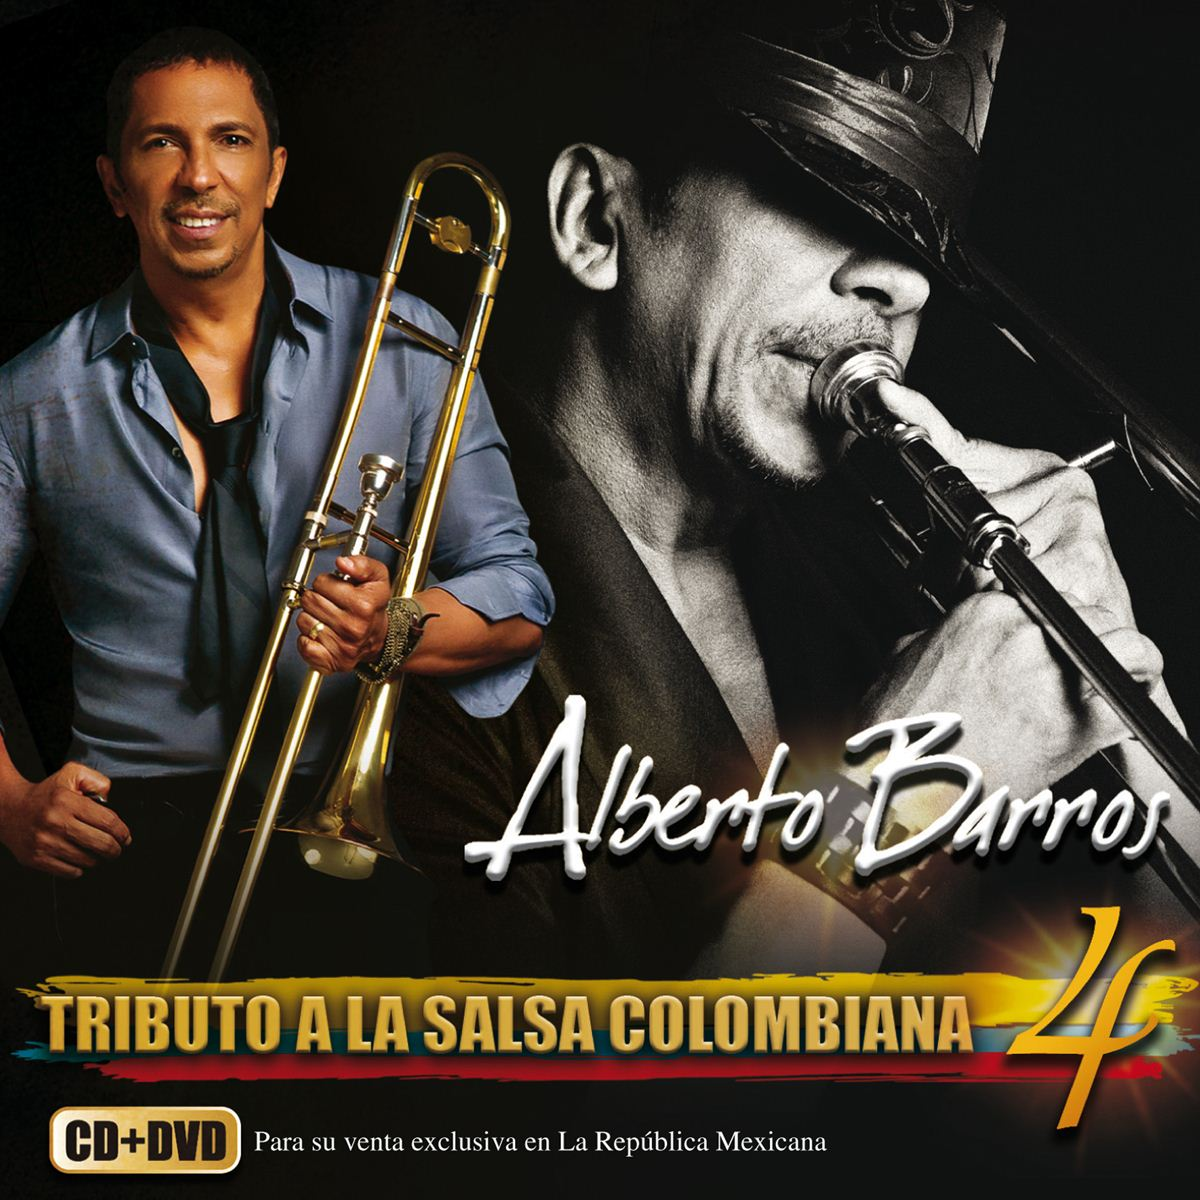 4Cd/Dvd Alberto Barros-Tributo A La Salsa Colombiana